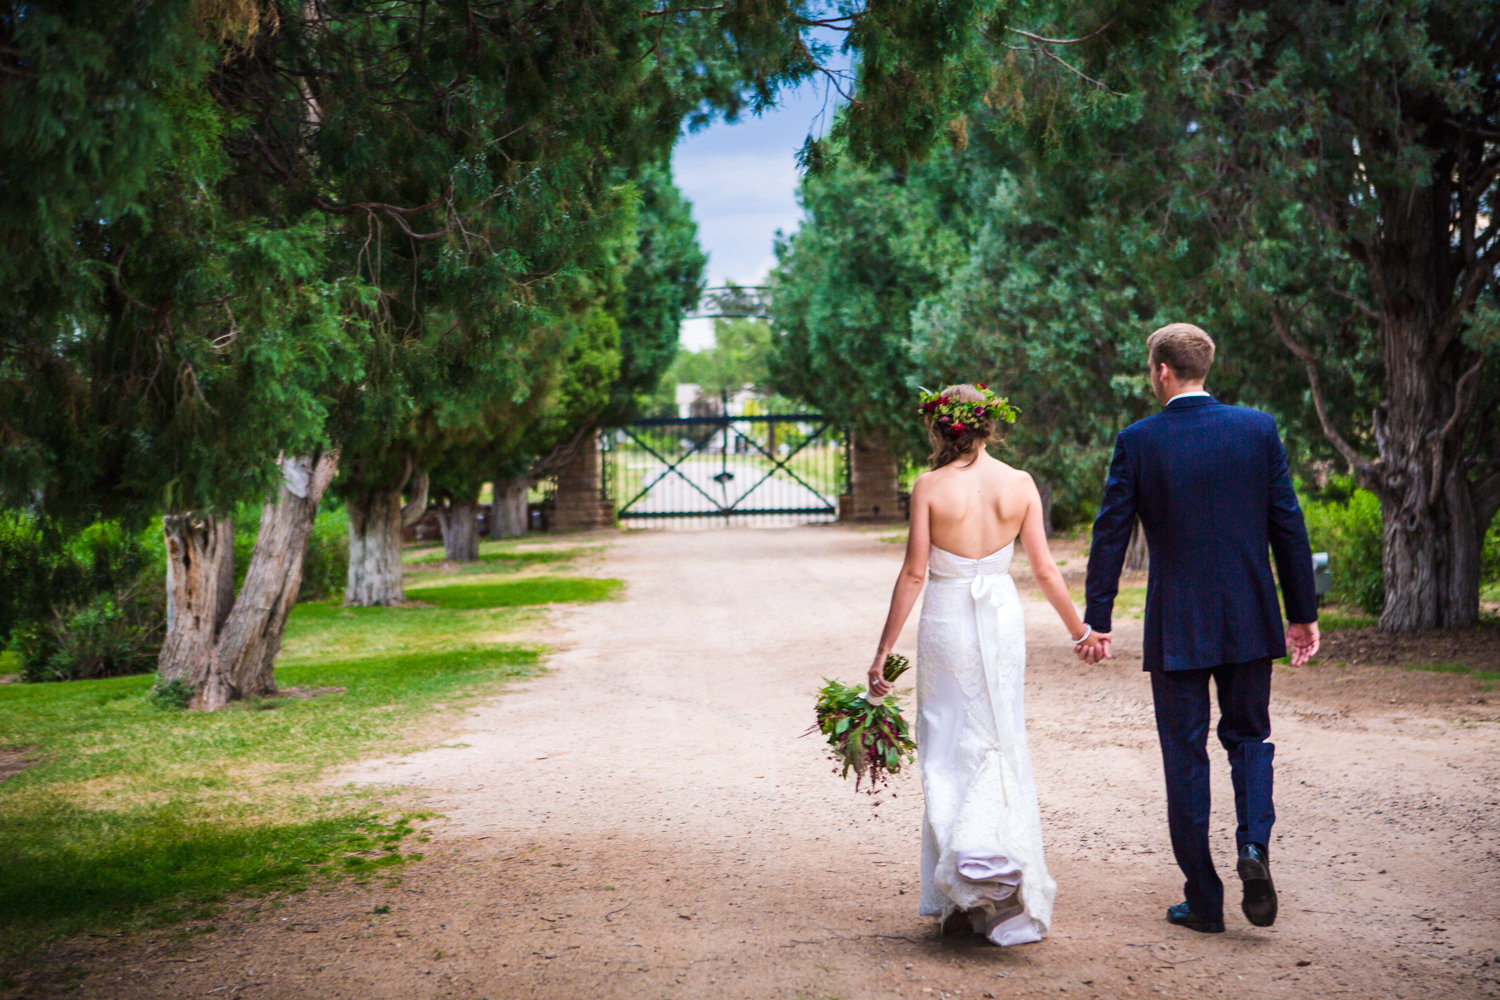 Bride and groom walking outside Highlands Ranch Mansion.    hotographed by JMGant Photography, Denver Colorado wedding photographer.